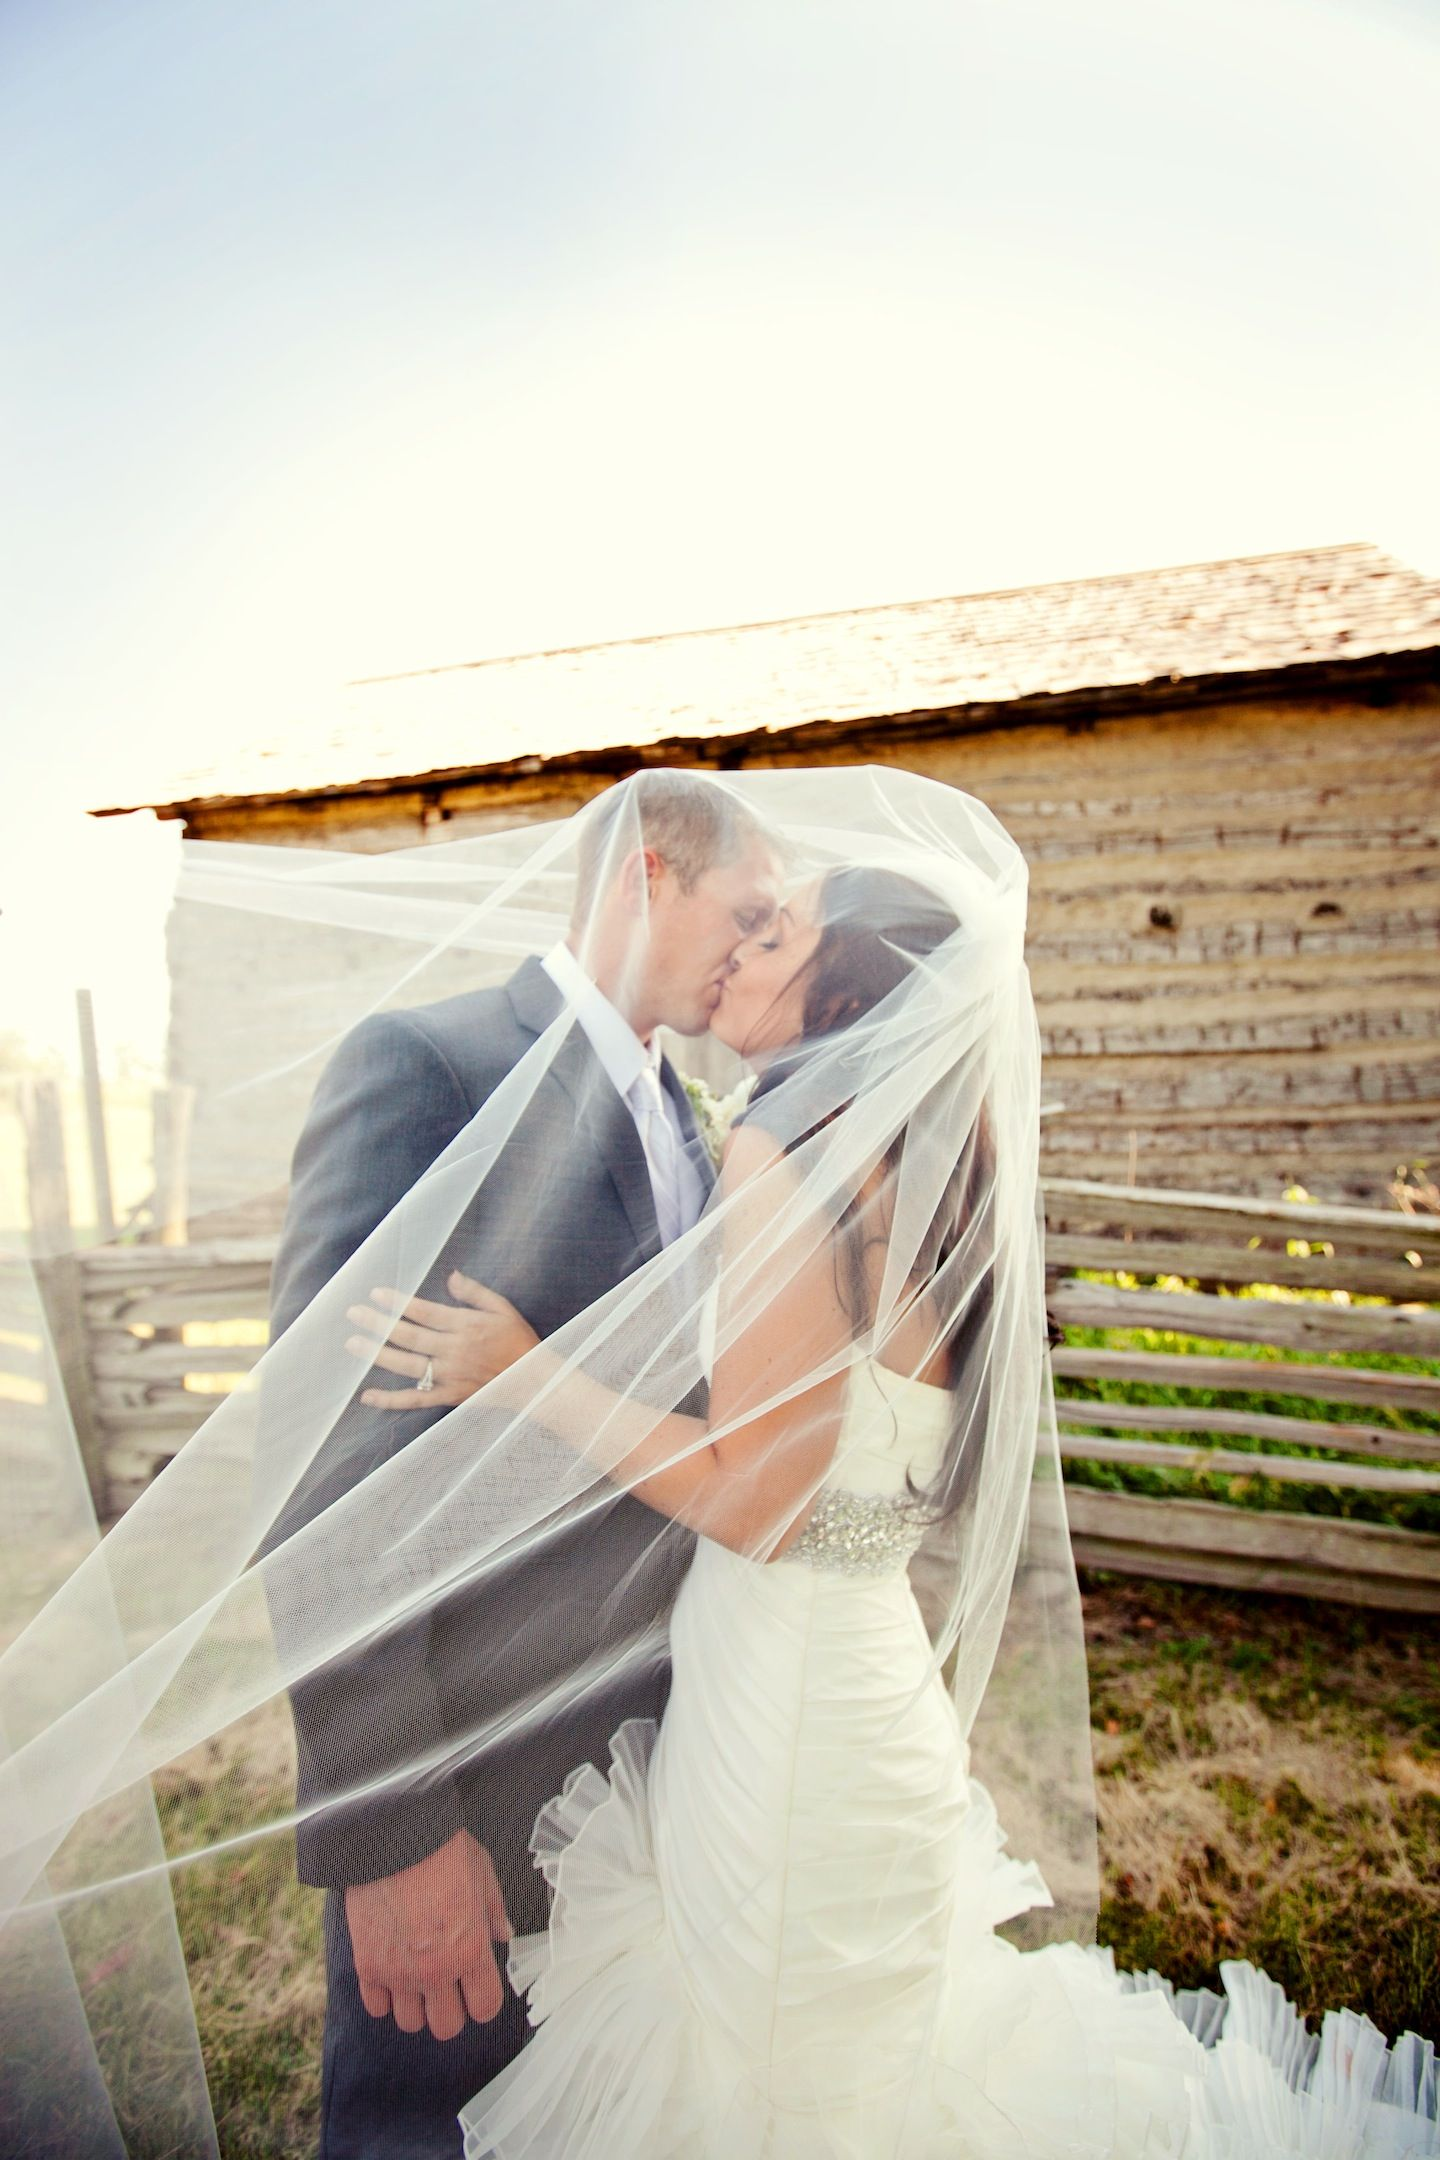 Dresses for a country wedding  A country wedding  Photo by Randi minneapolisweddingphotography